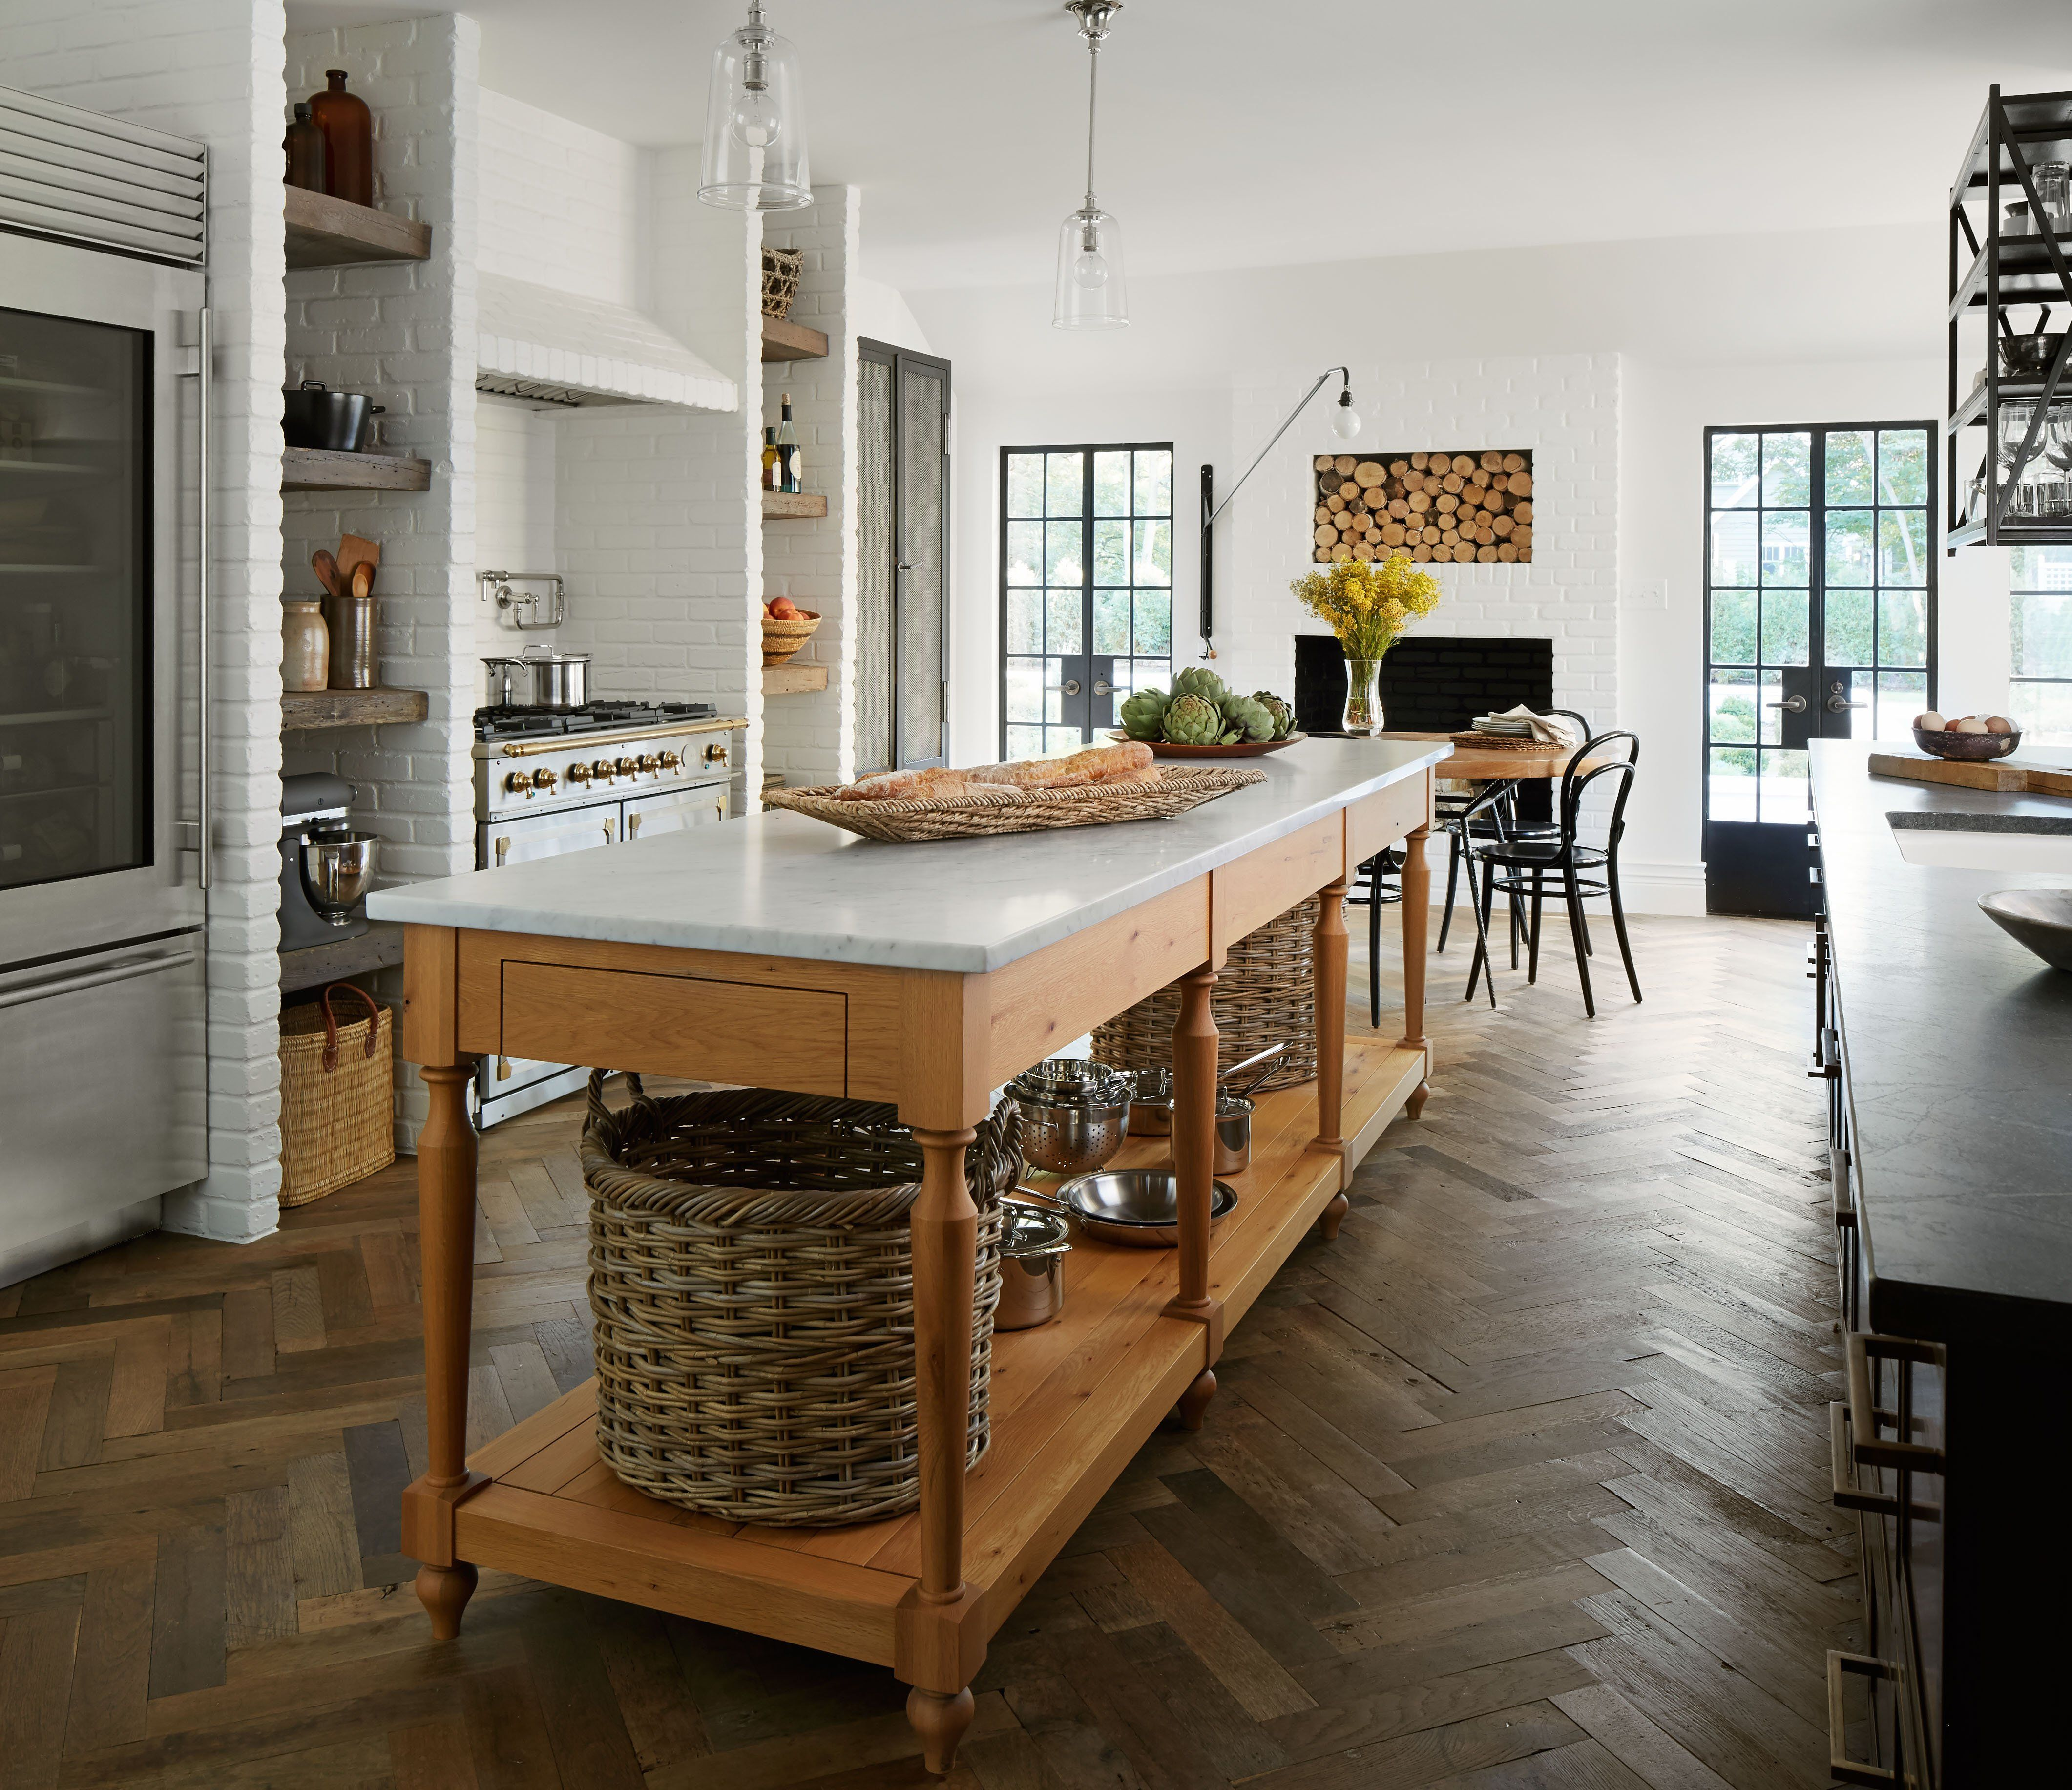 Charmant Kitchen In Bloomington, IL By Summer Thornton Design